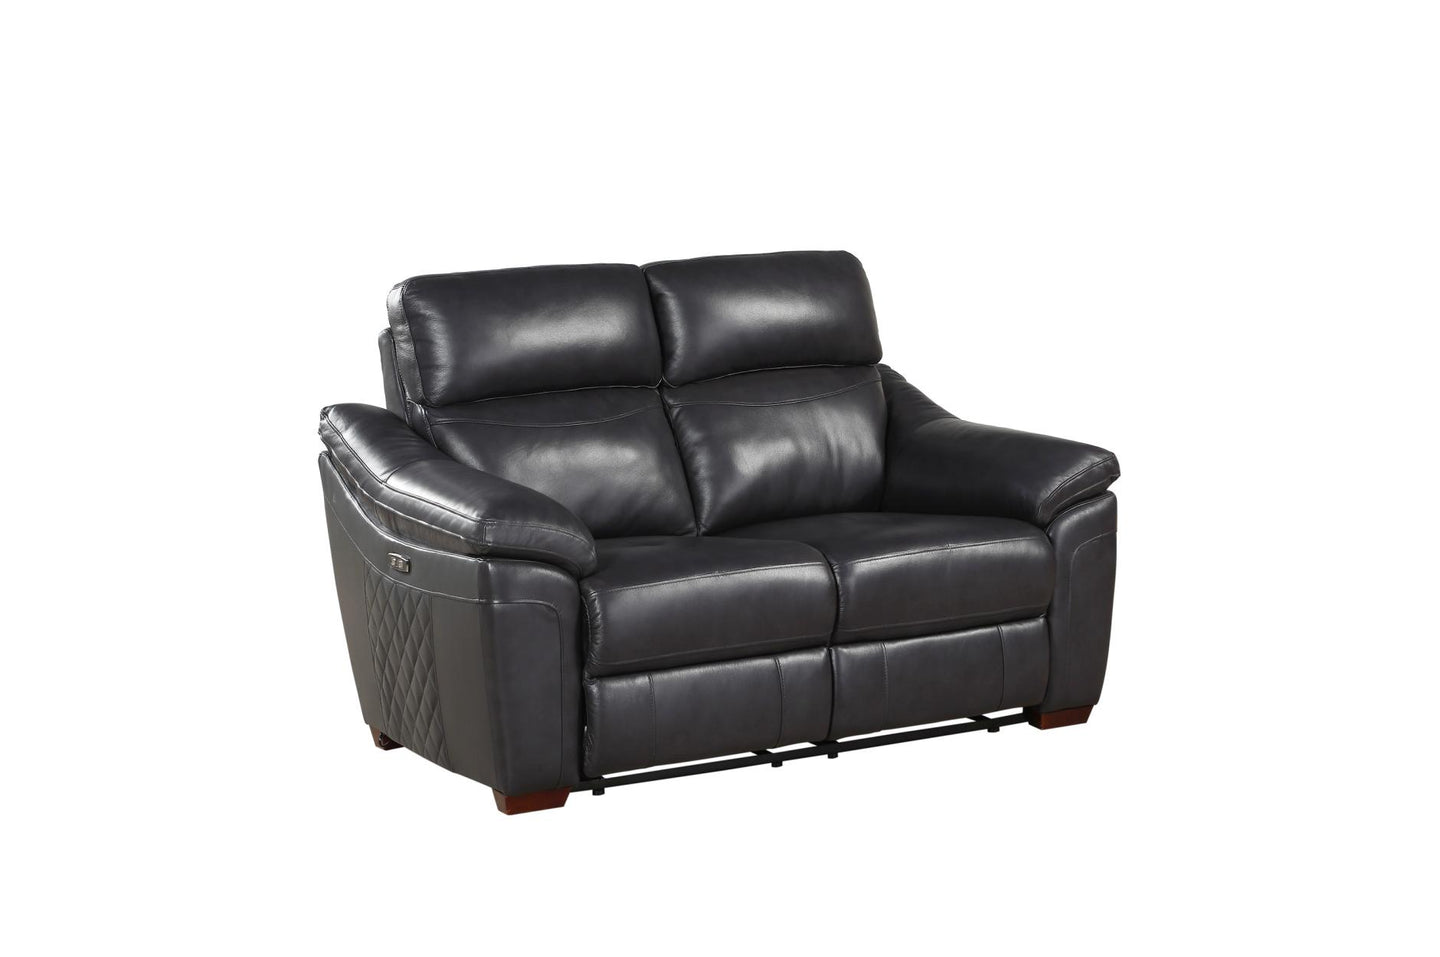 Homelegance Renzo Grey Leather Finish Power Recliner Loveseat